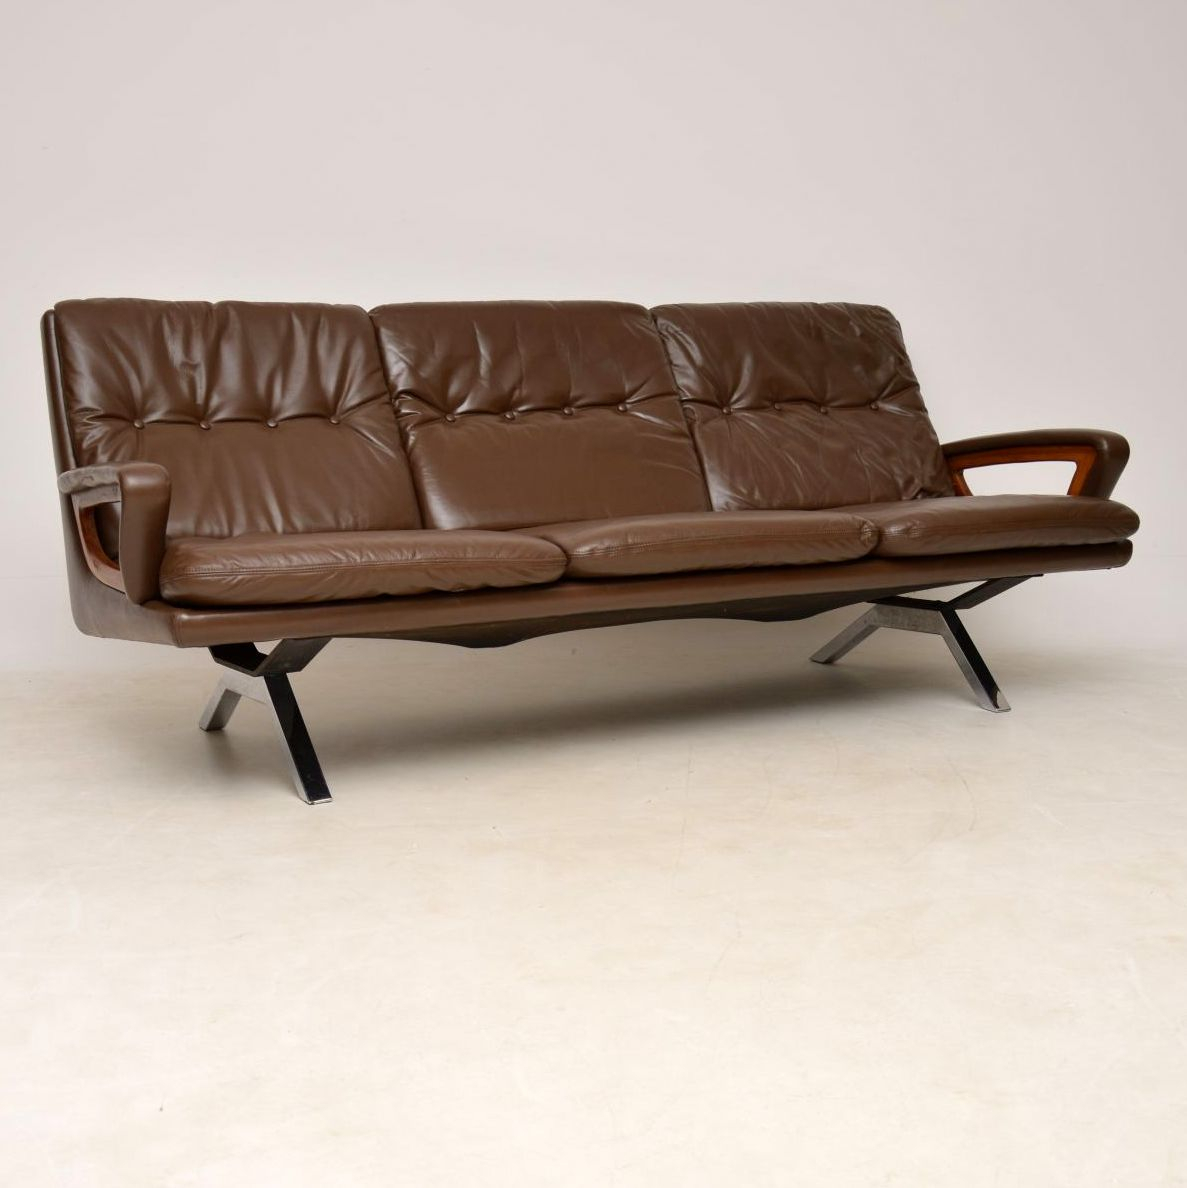 1960'S Danish Vintage Leather Teak And Chrome Sofa Within Retro Sofas And Chairs (View 5 of 15)